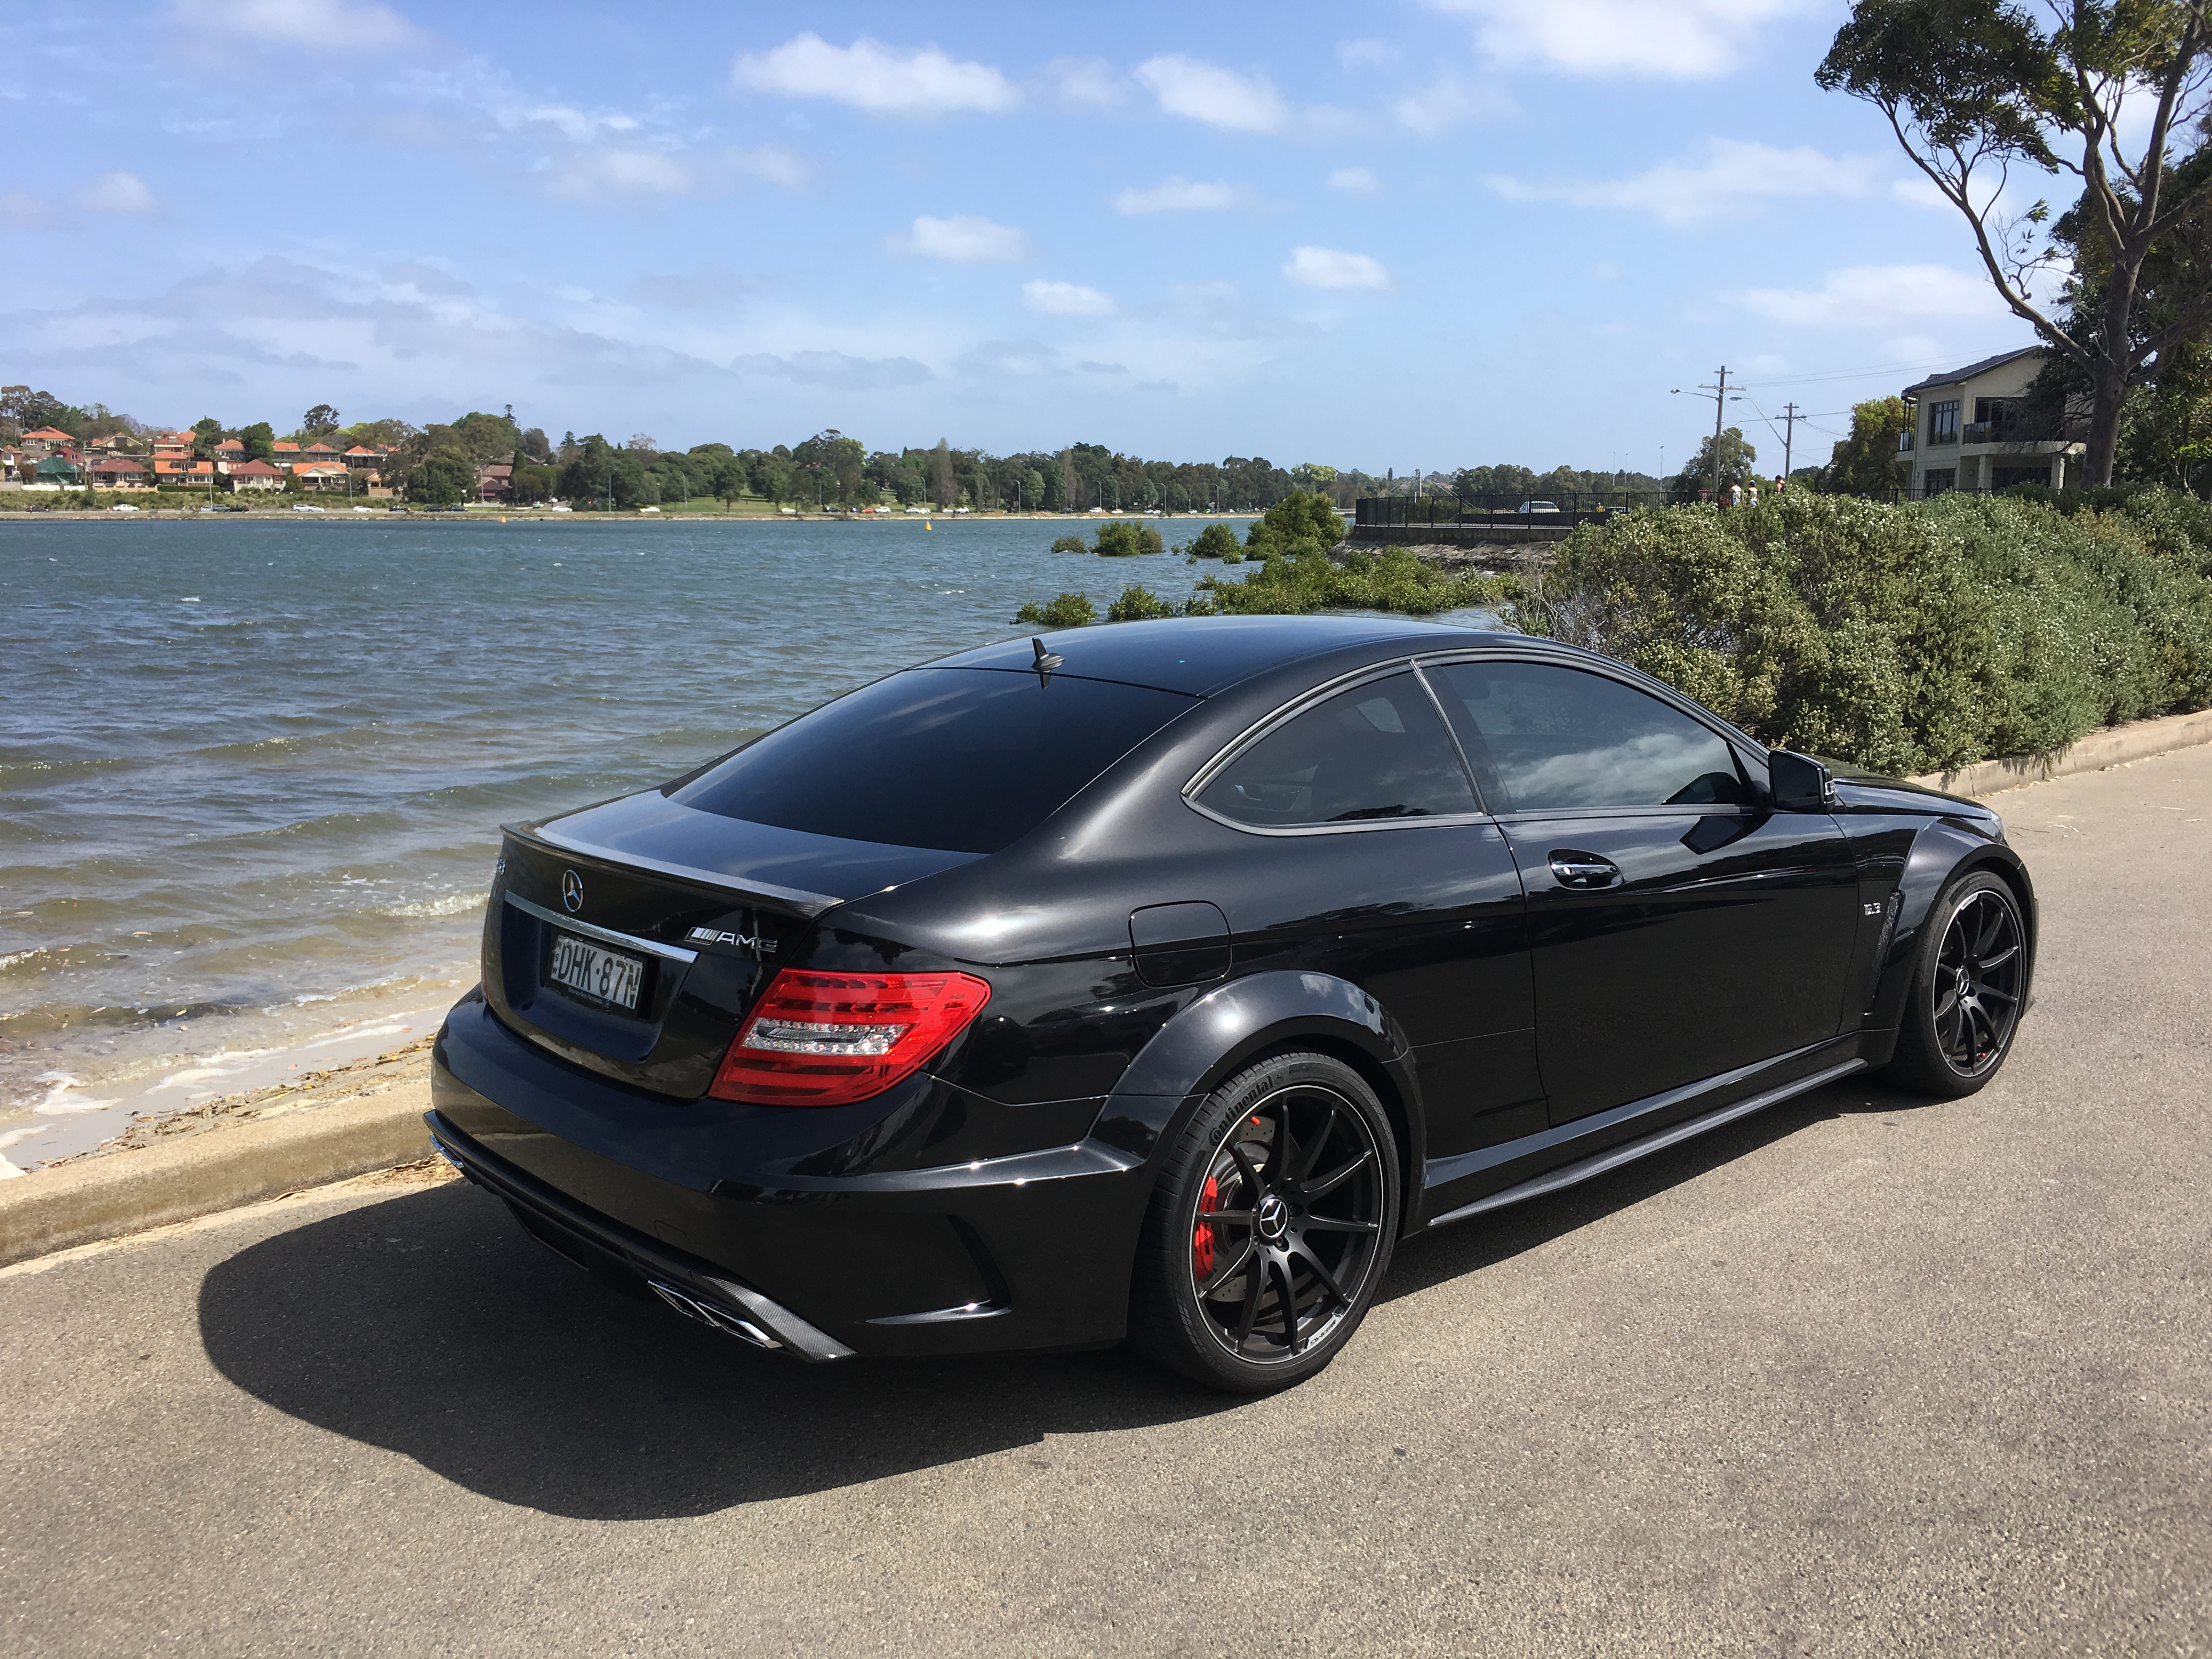 mercedes amg c63 vs bmw m3 v8 huffpost. Black Bedroom Furniture Sets. Home Design Ideas